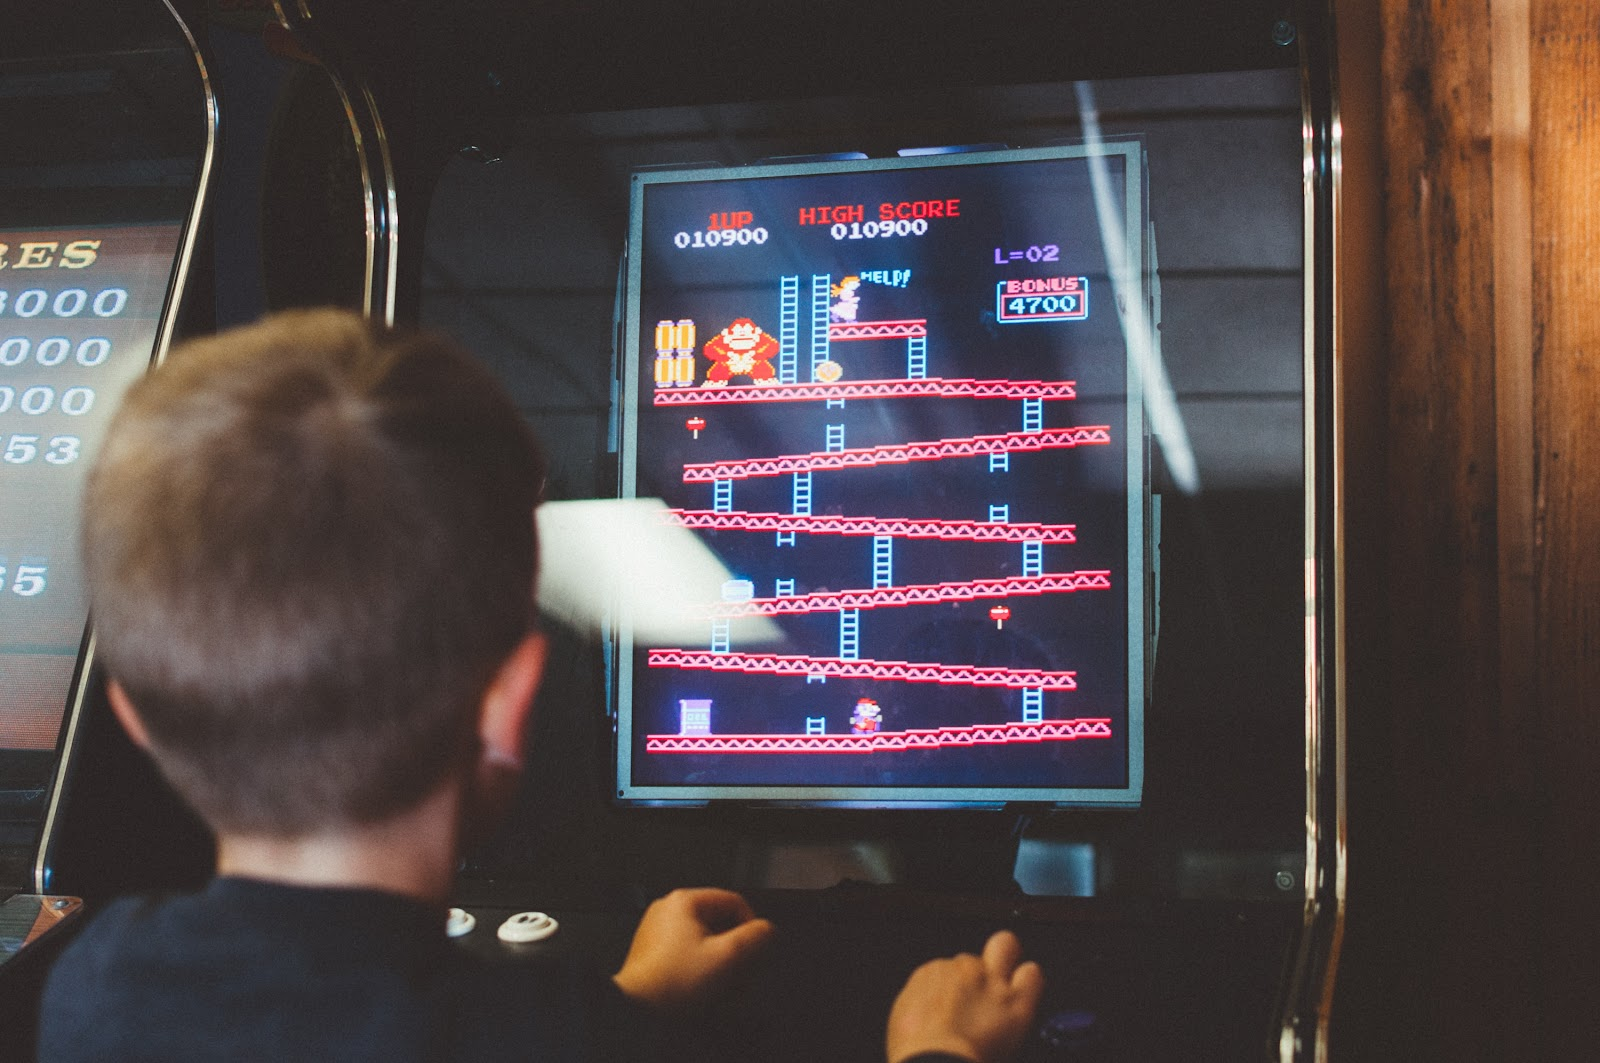 What is Your Favorite Arcade Video Game From the '80s?